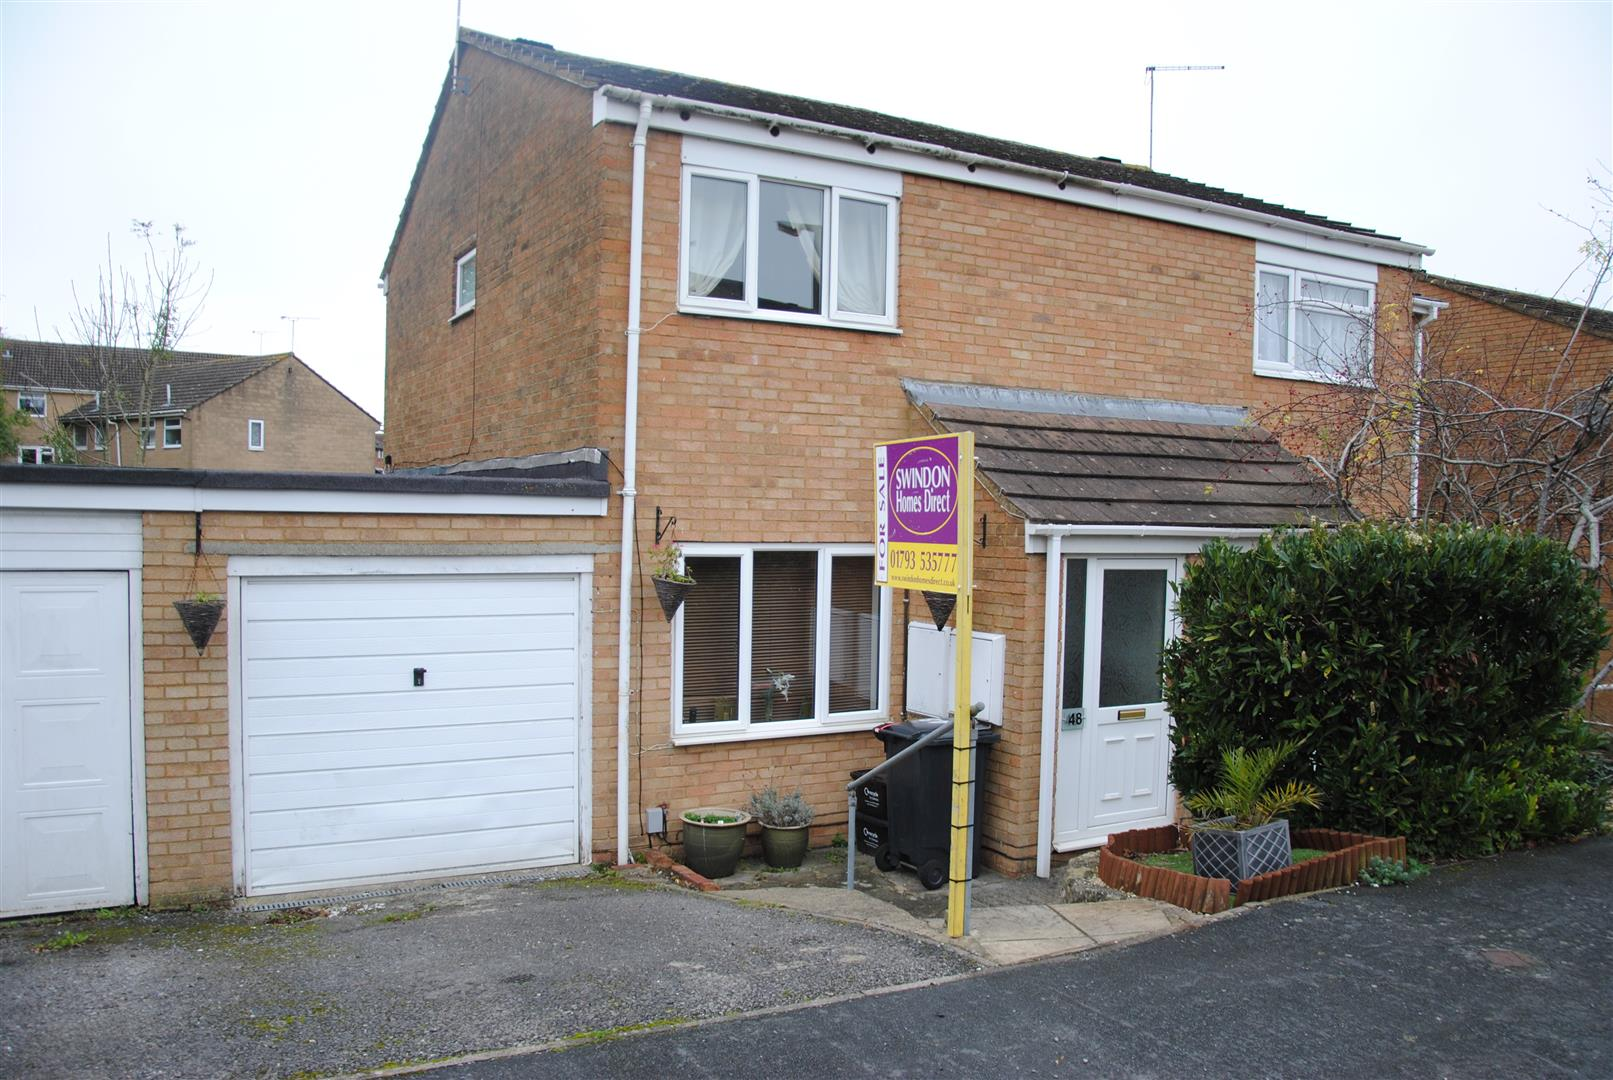 2 Bedrooms Semi Detached House for sale in Luddesdown Road, Toothill, Swindon